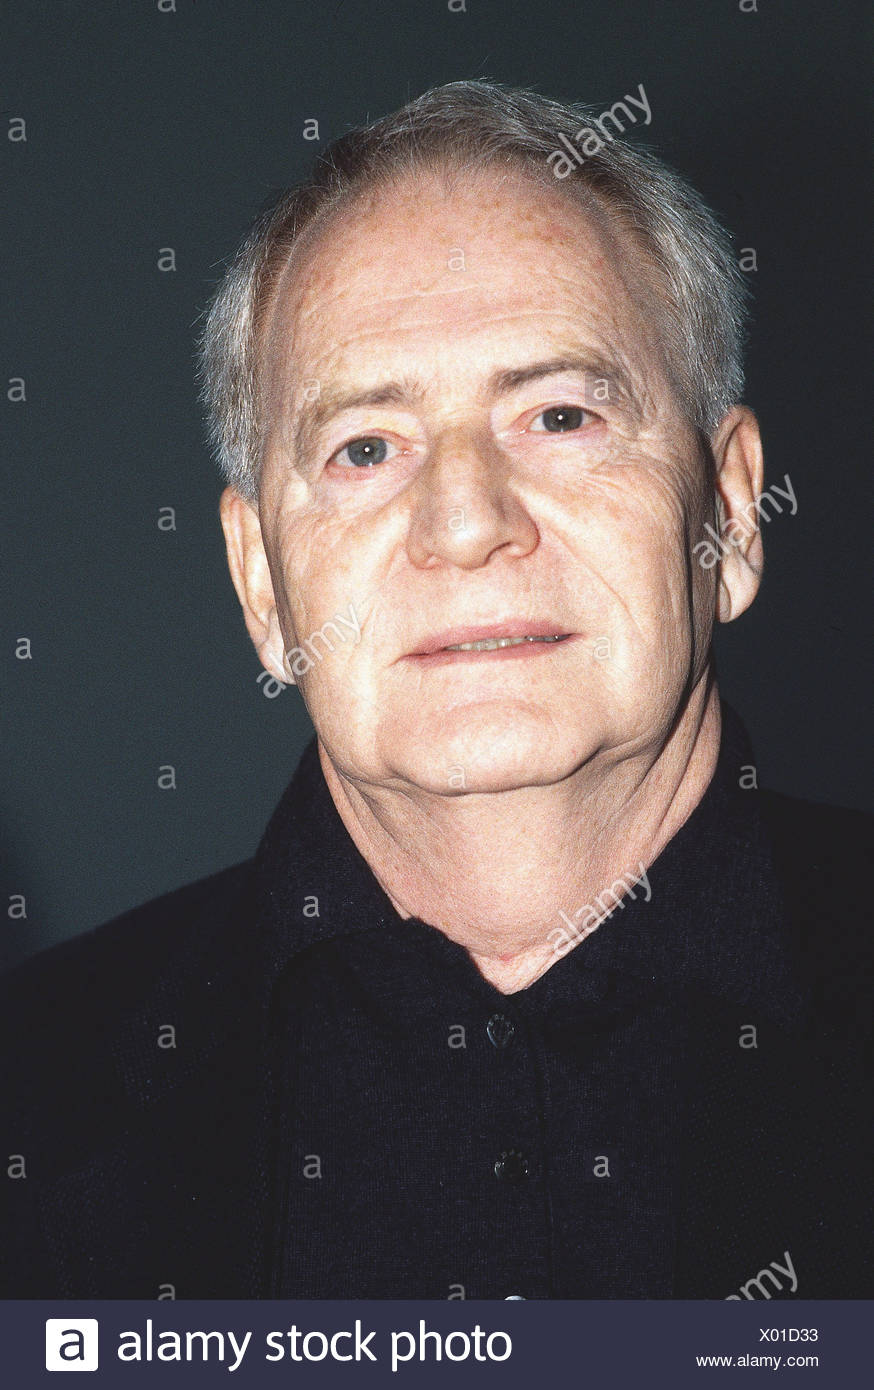 Szabo, Istvan, * 18.2.1938, Hungarian director, portrait, 2000, Additional-Rights-Clearances-NA Stock Photo